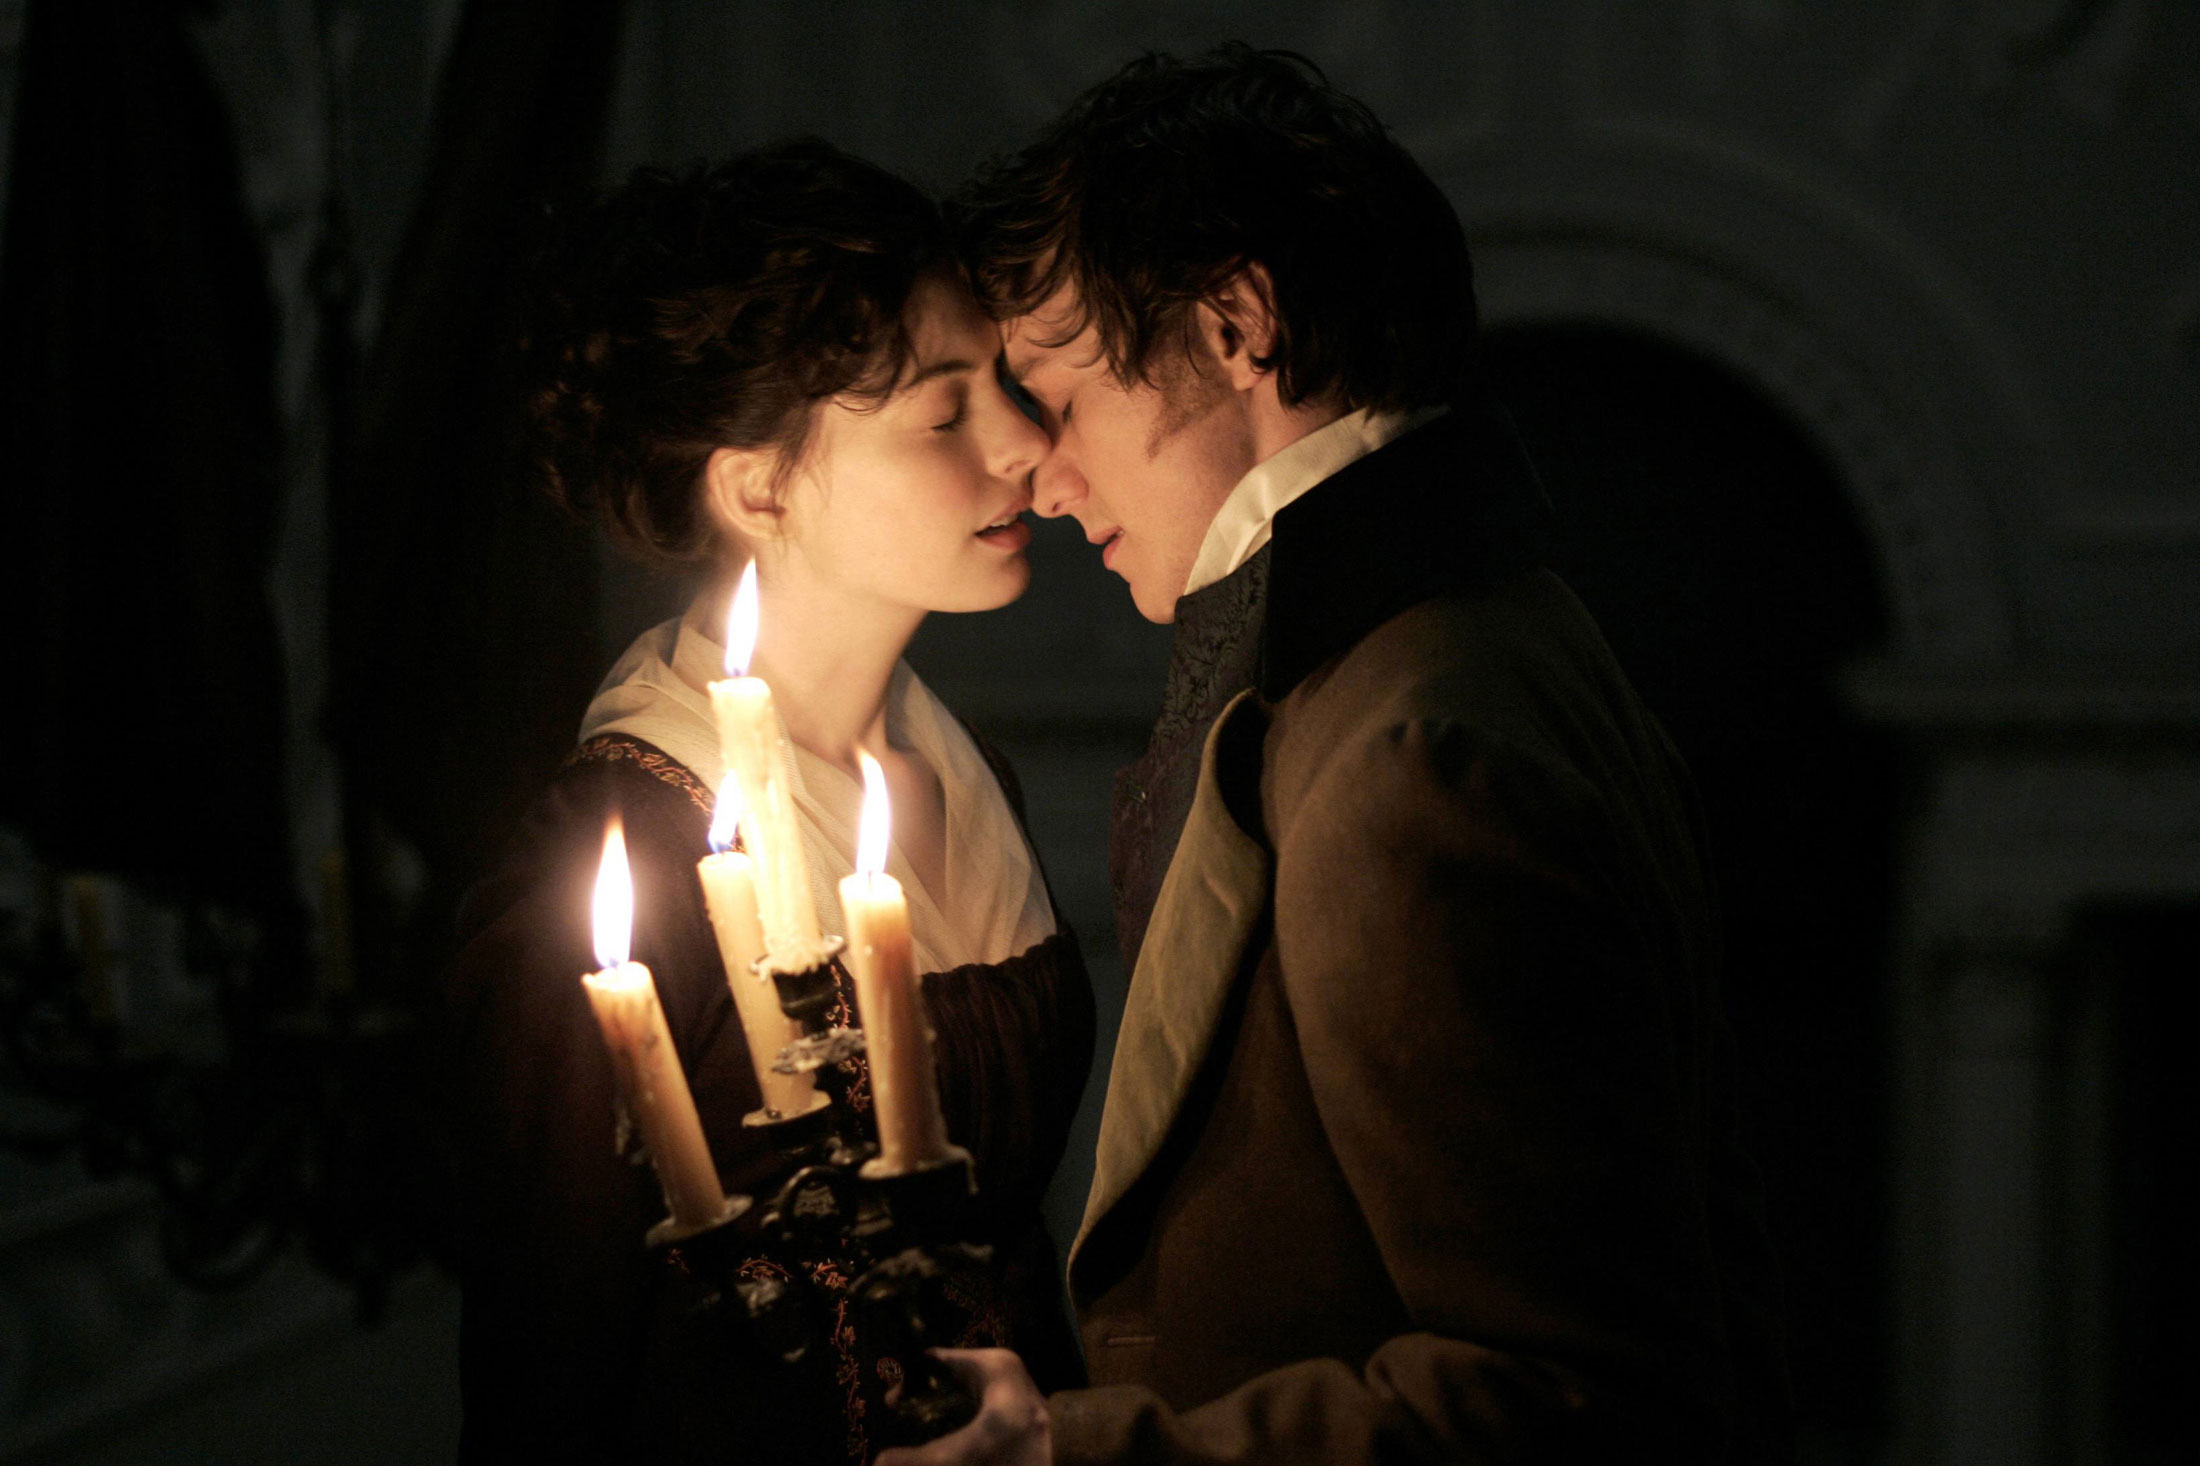 a comparison of victorian themes in jane eyre and great expectations